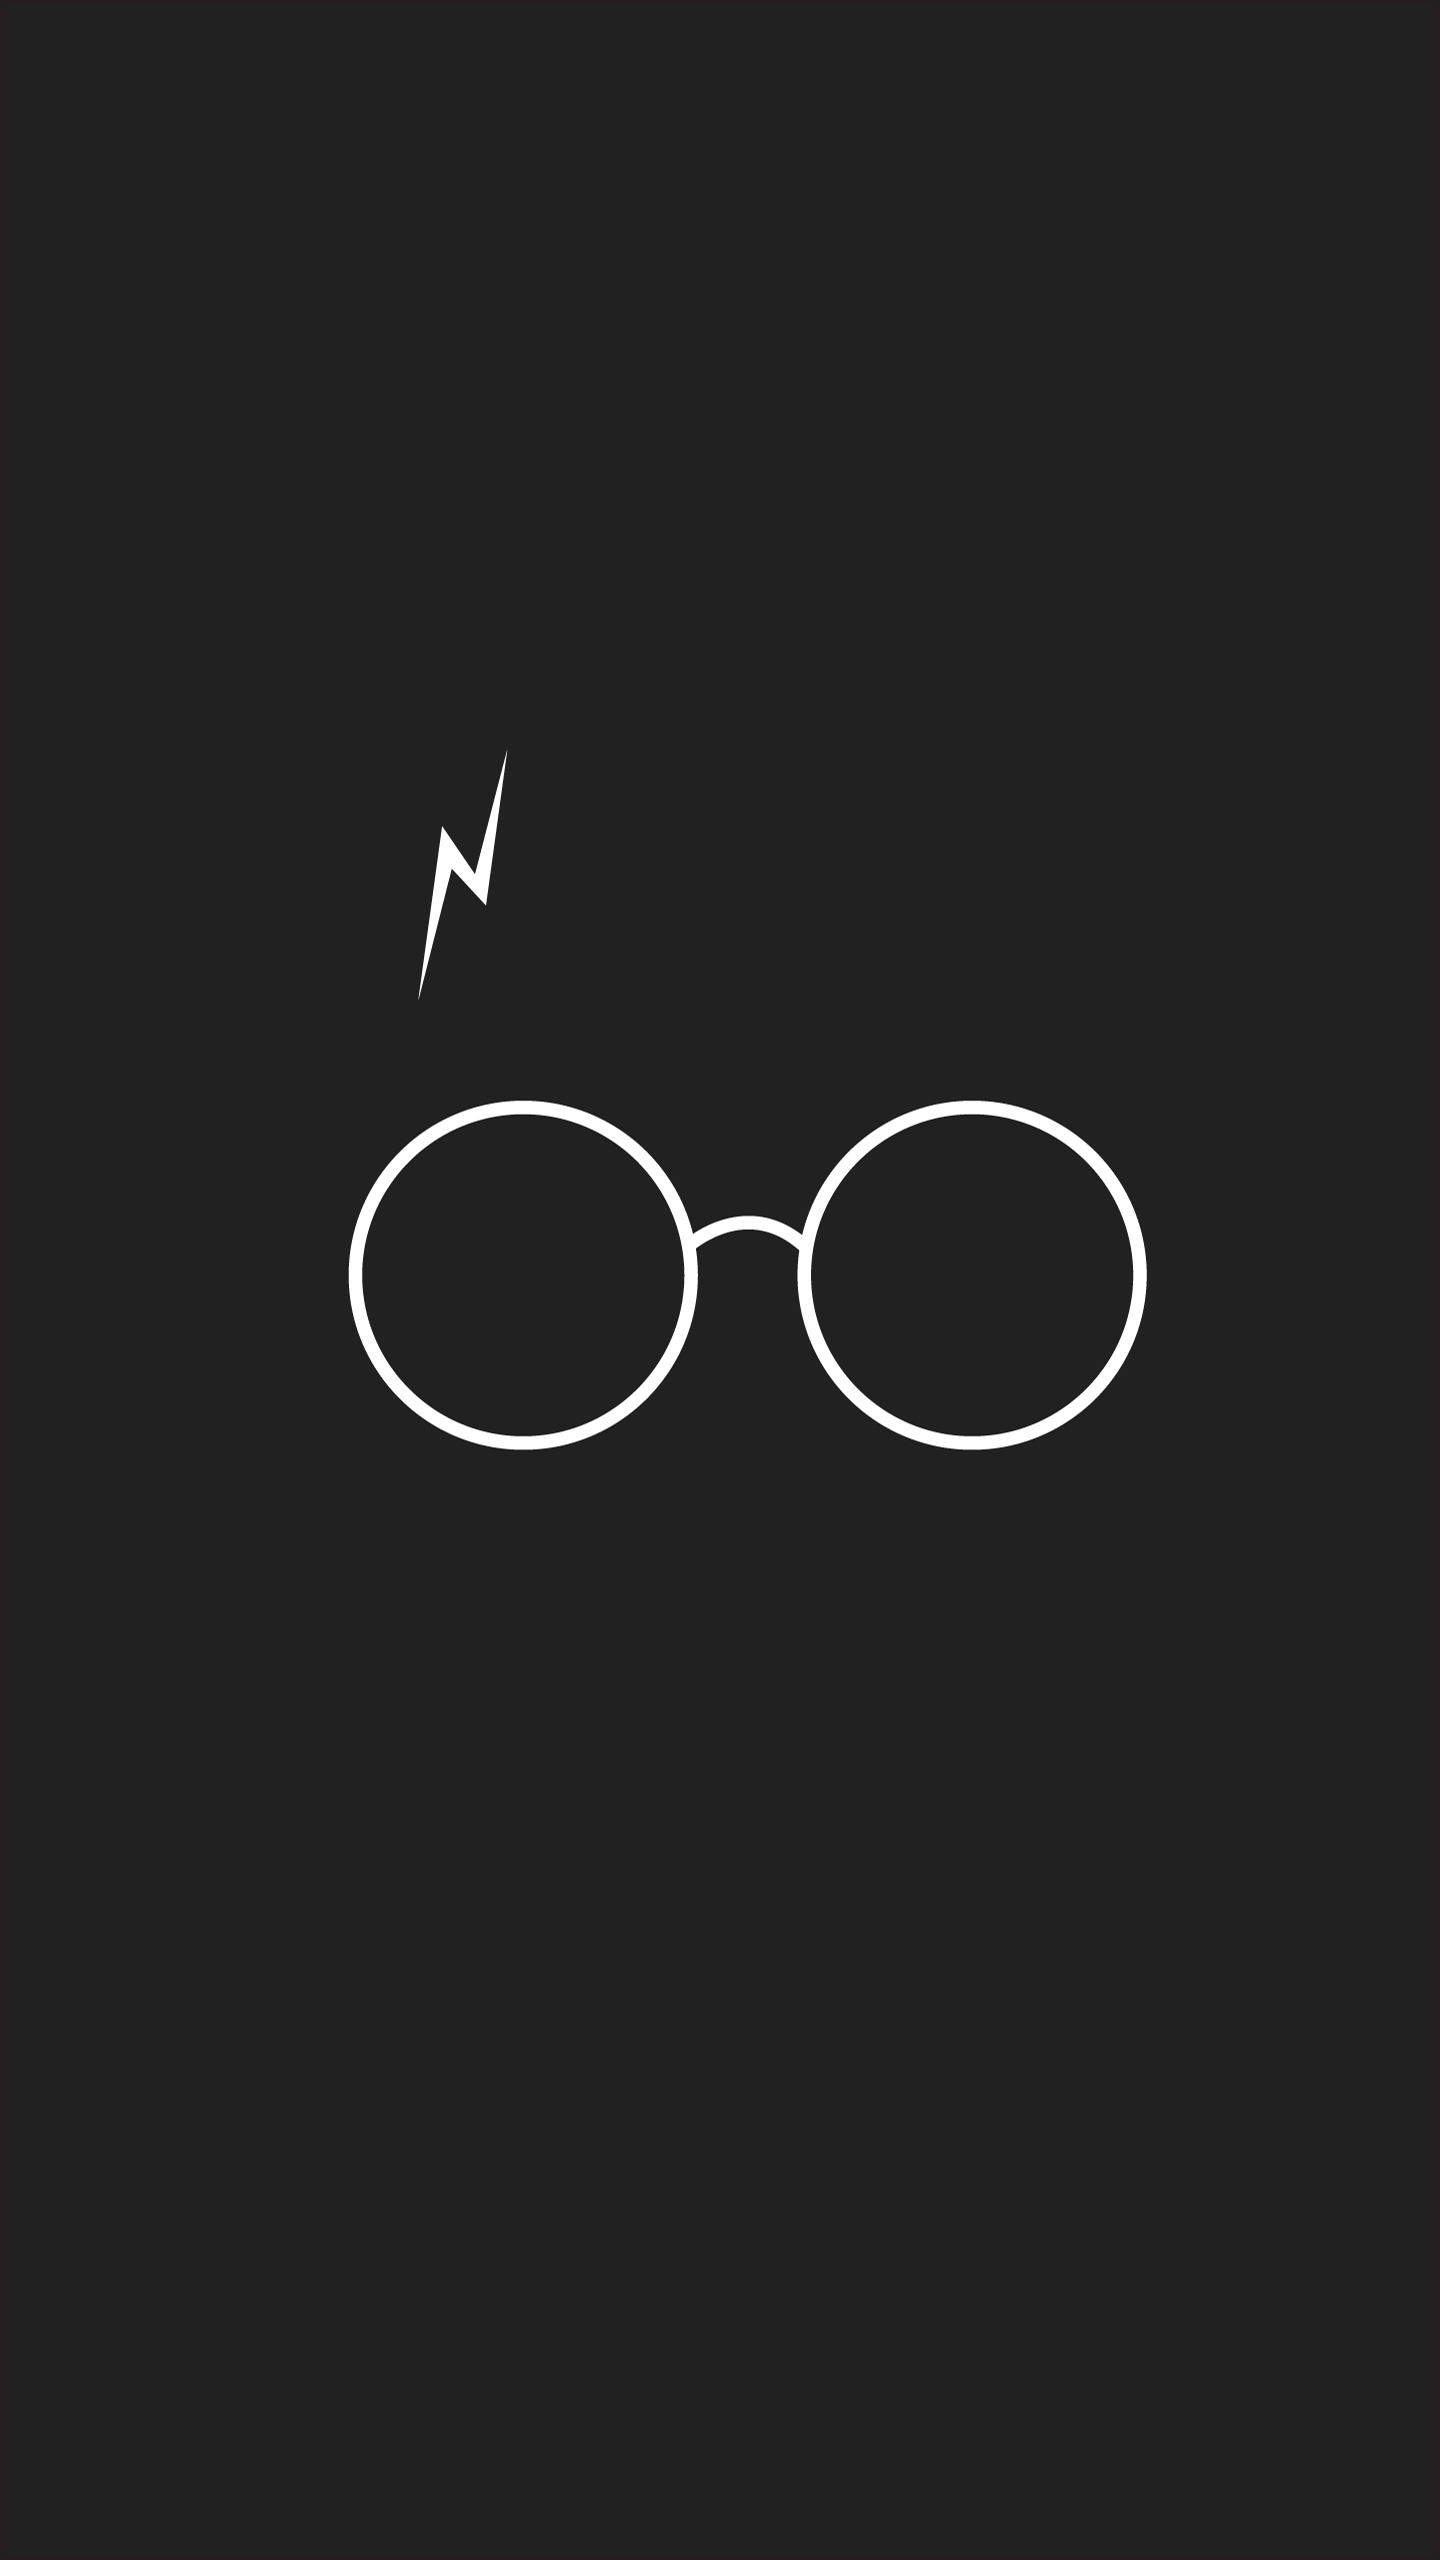 Harry Potter iPhone Wallpaper iPhone Wallpaper